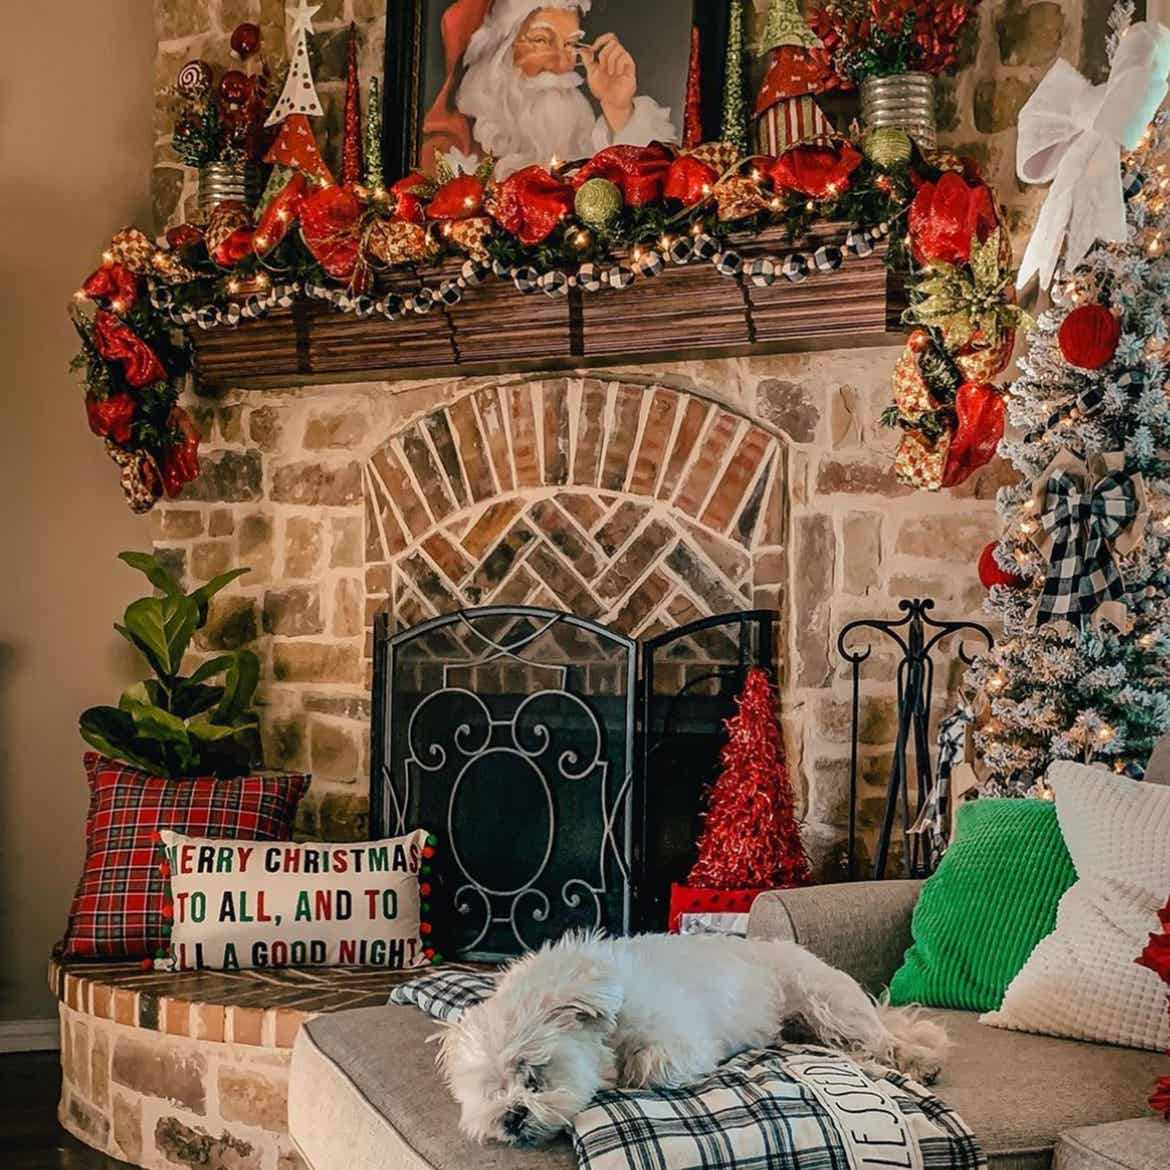 A small 'pencil tree' decked out in holiday decor next to a mantle decked out in holiday decor.